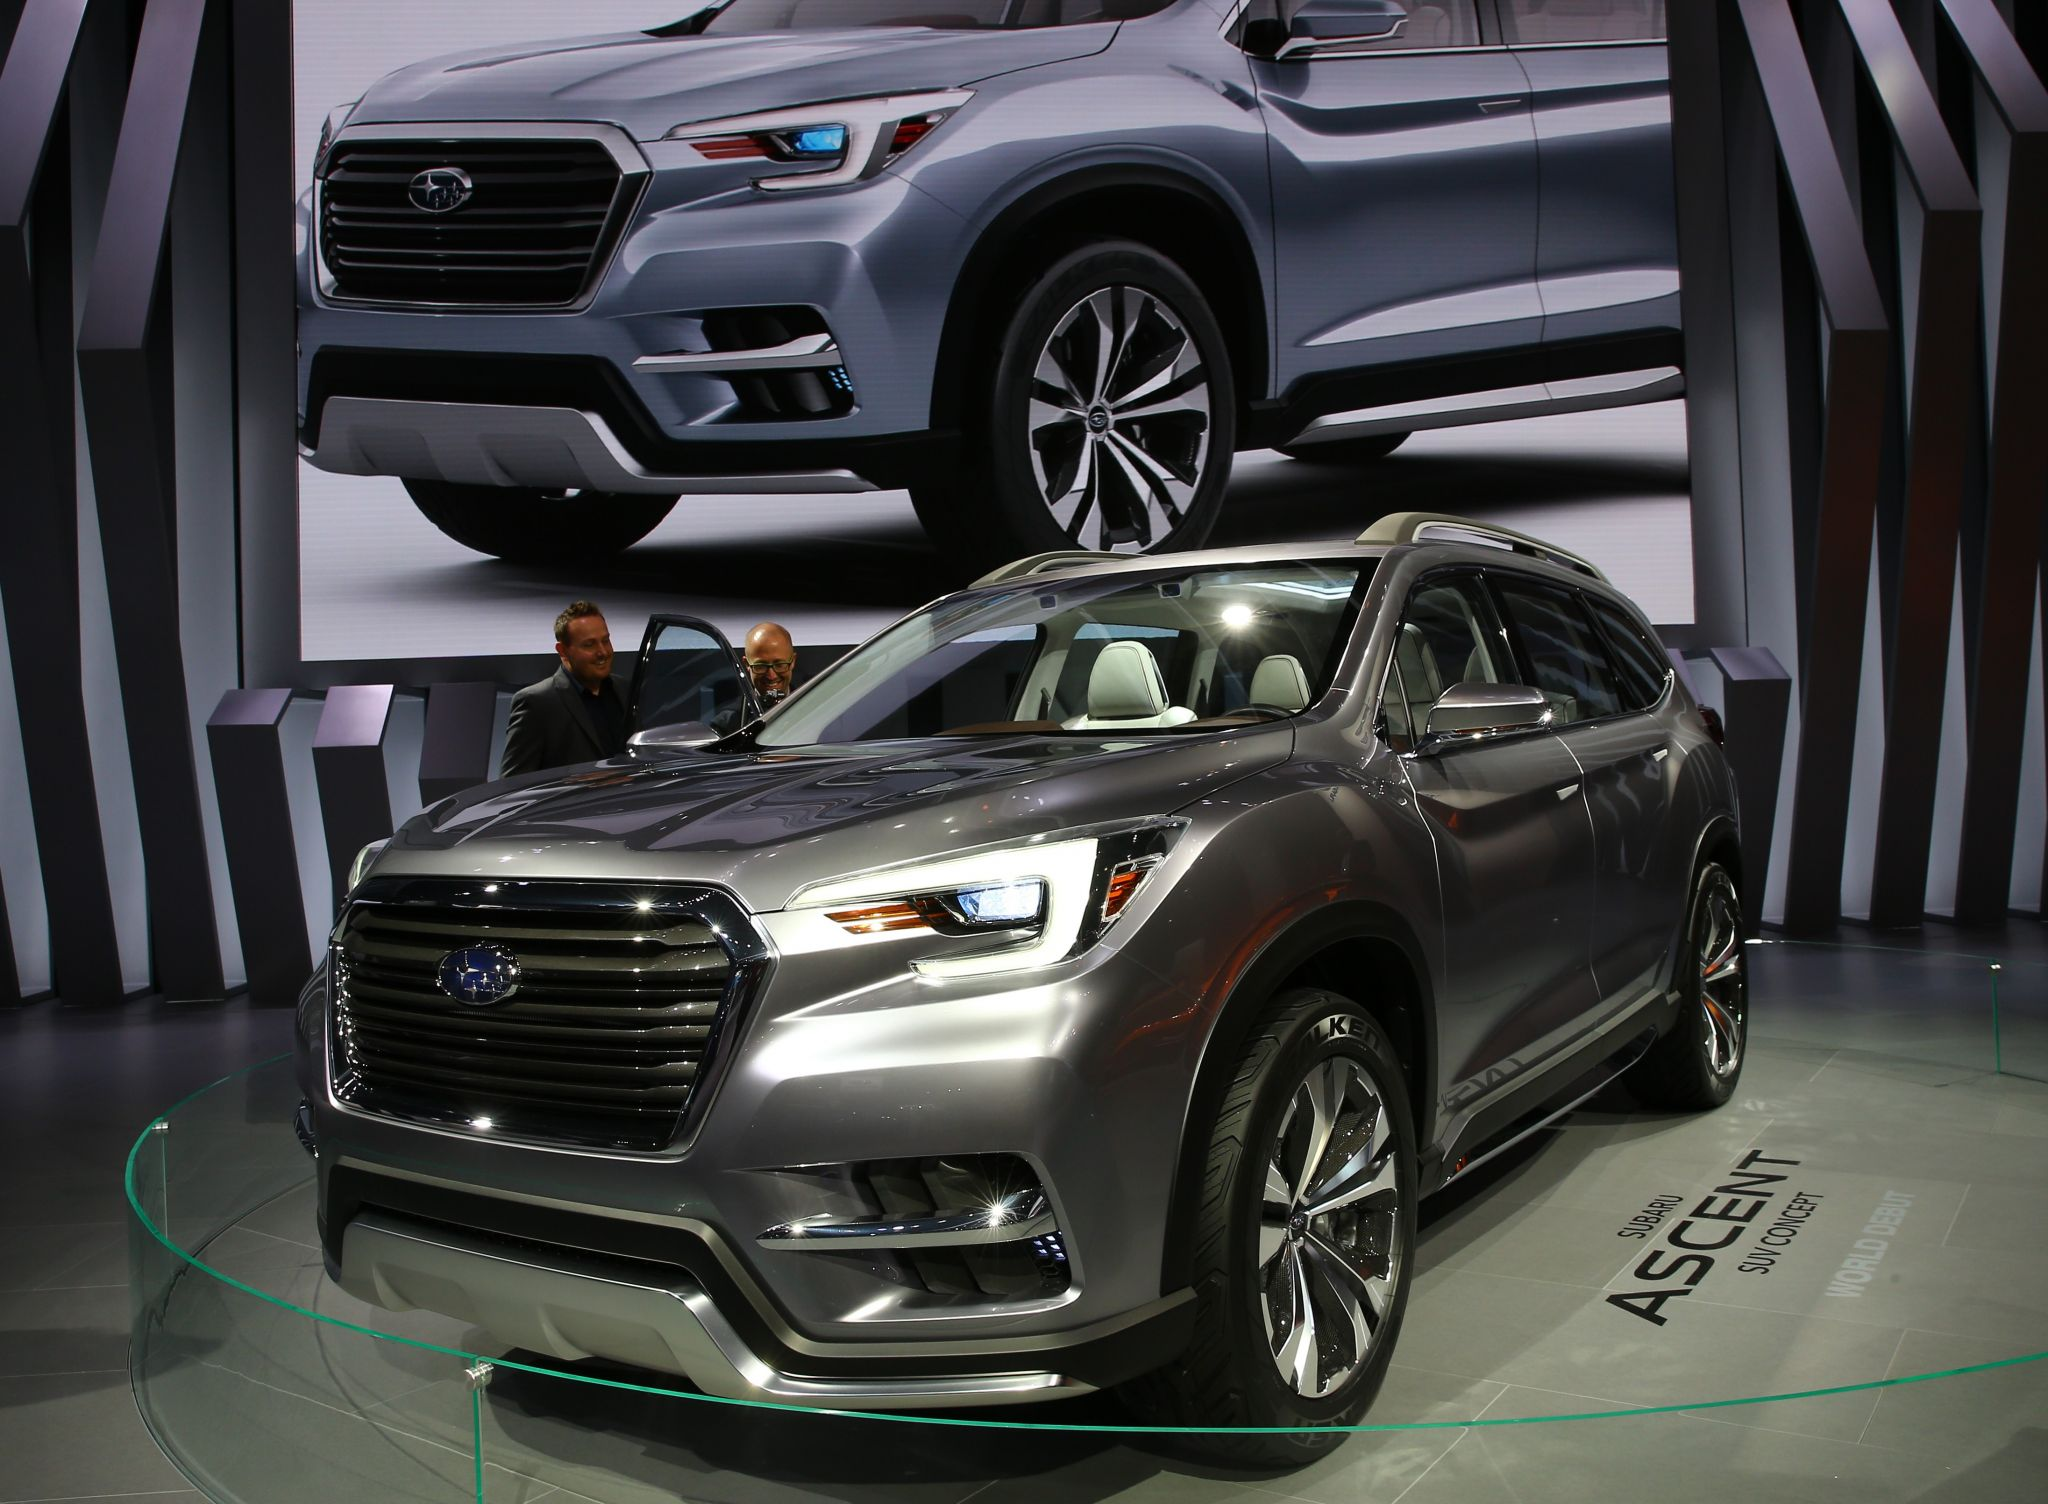 Gallery: The coolest cars from New York's International Auto Show